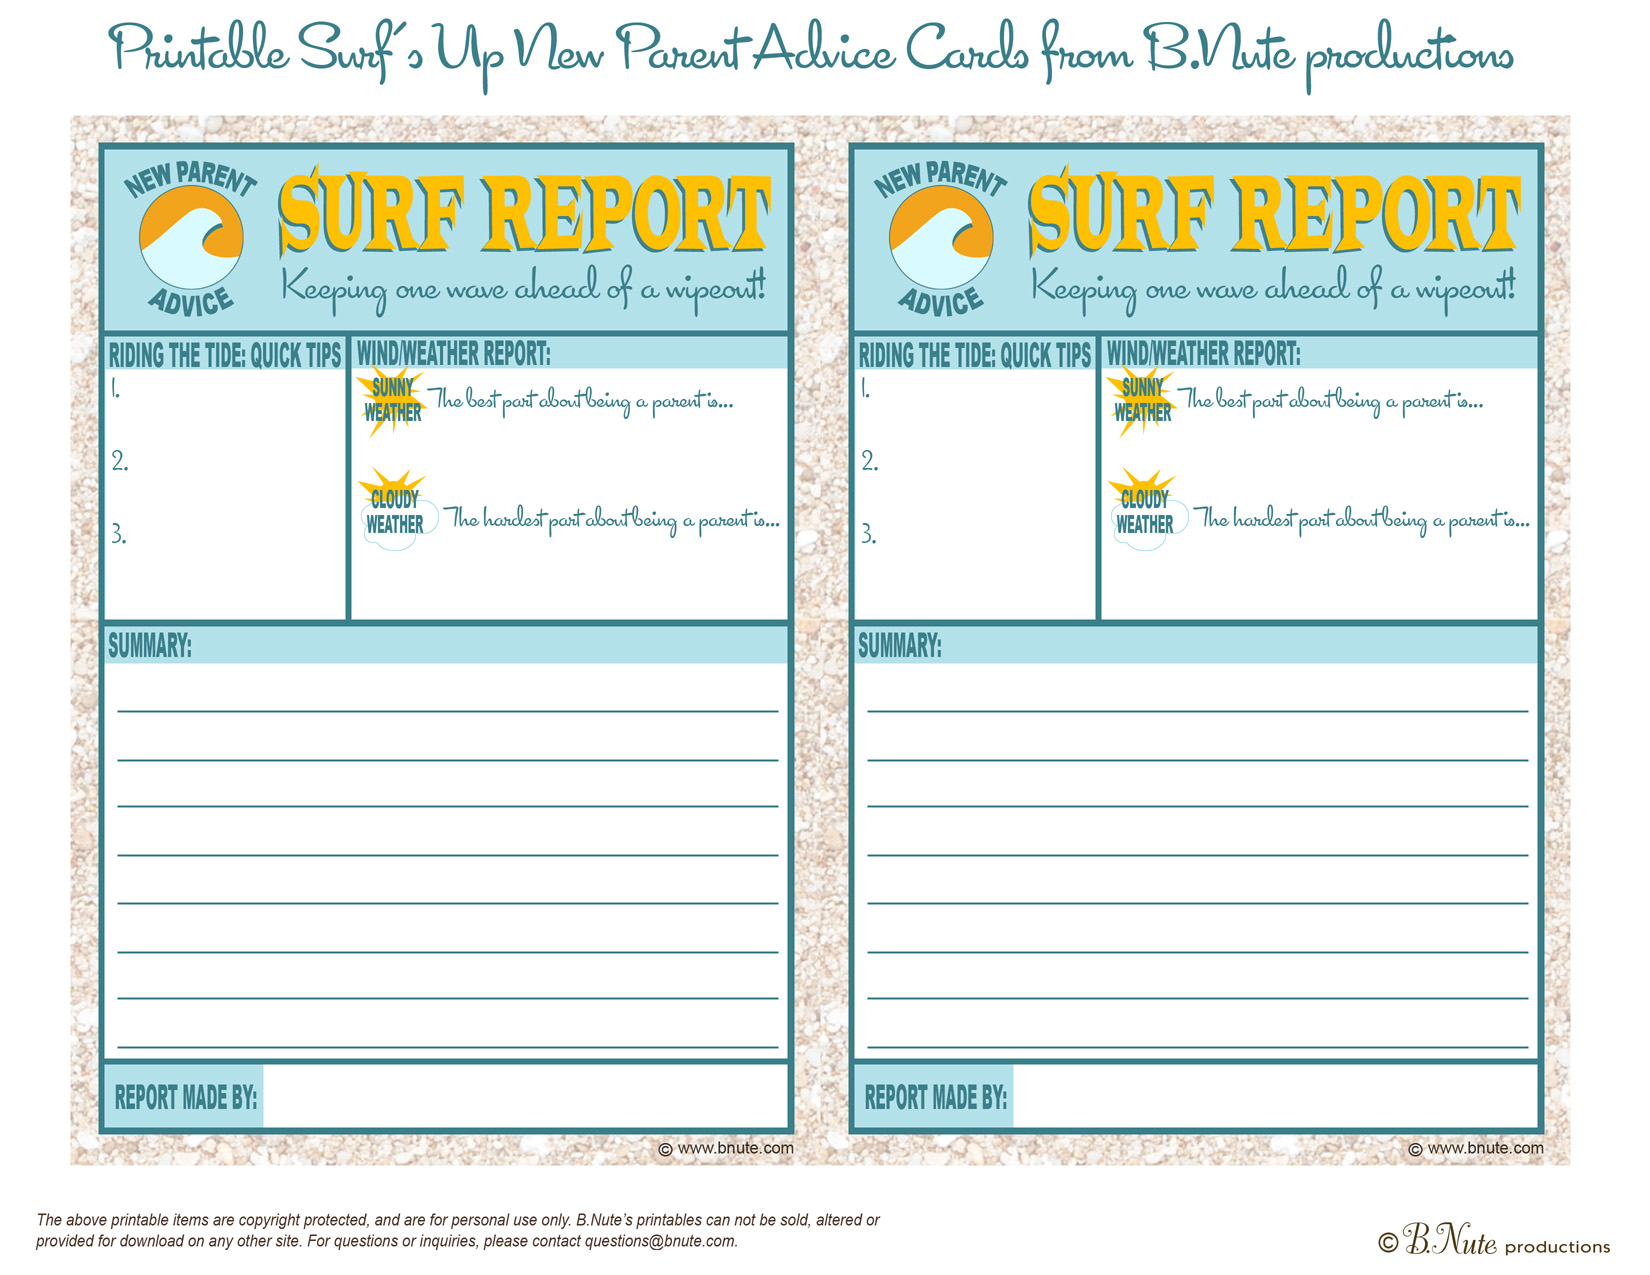 Bnute Productions Free Printable Surf Report New Parent